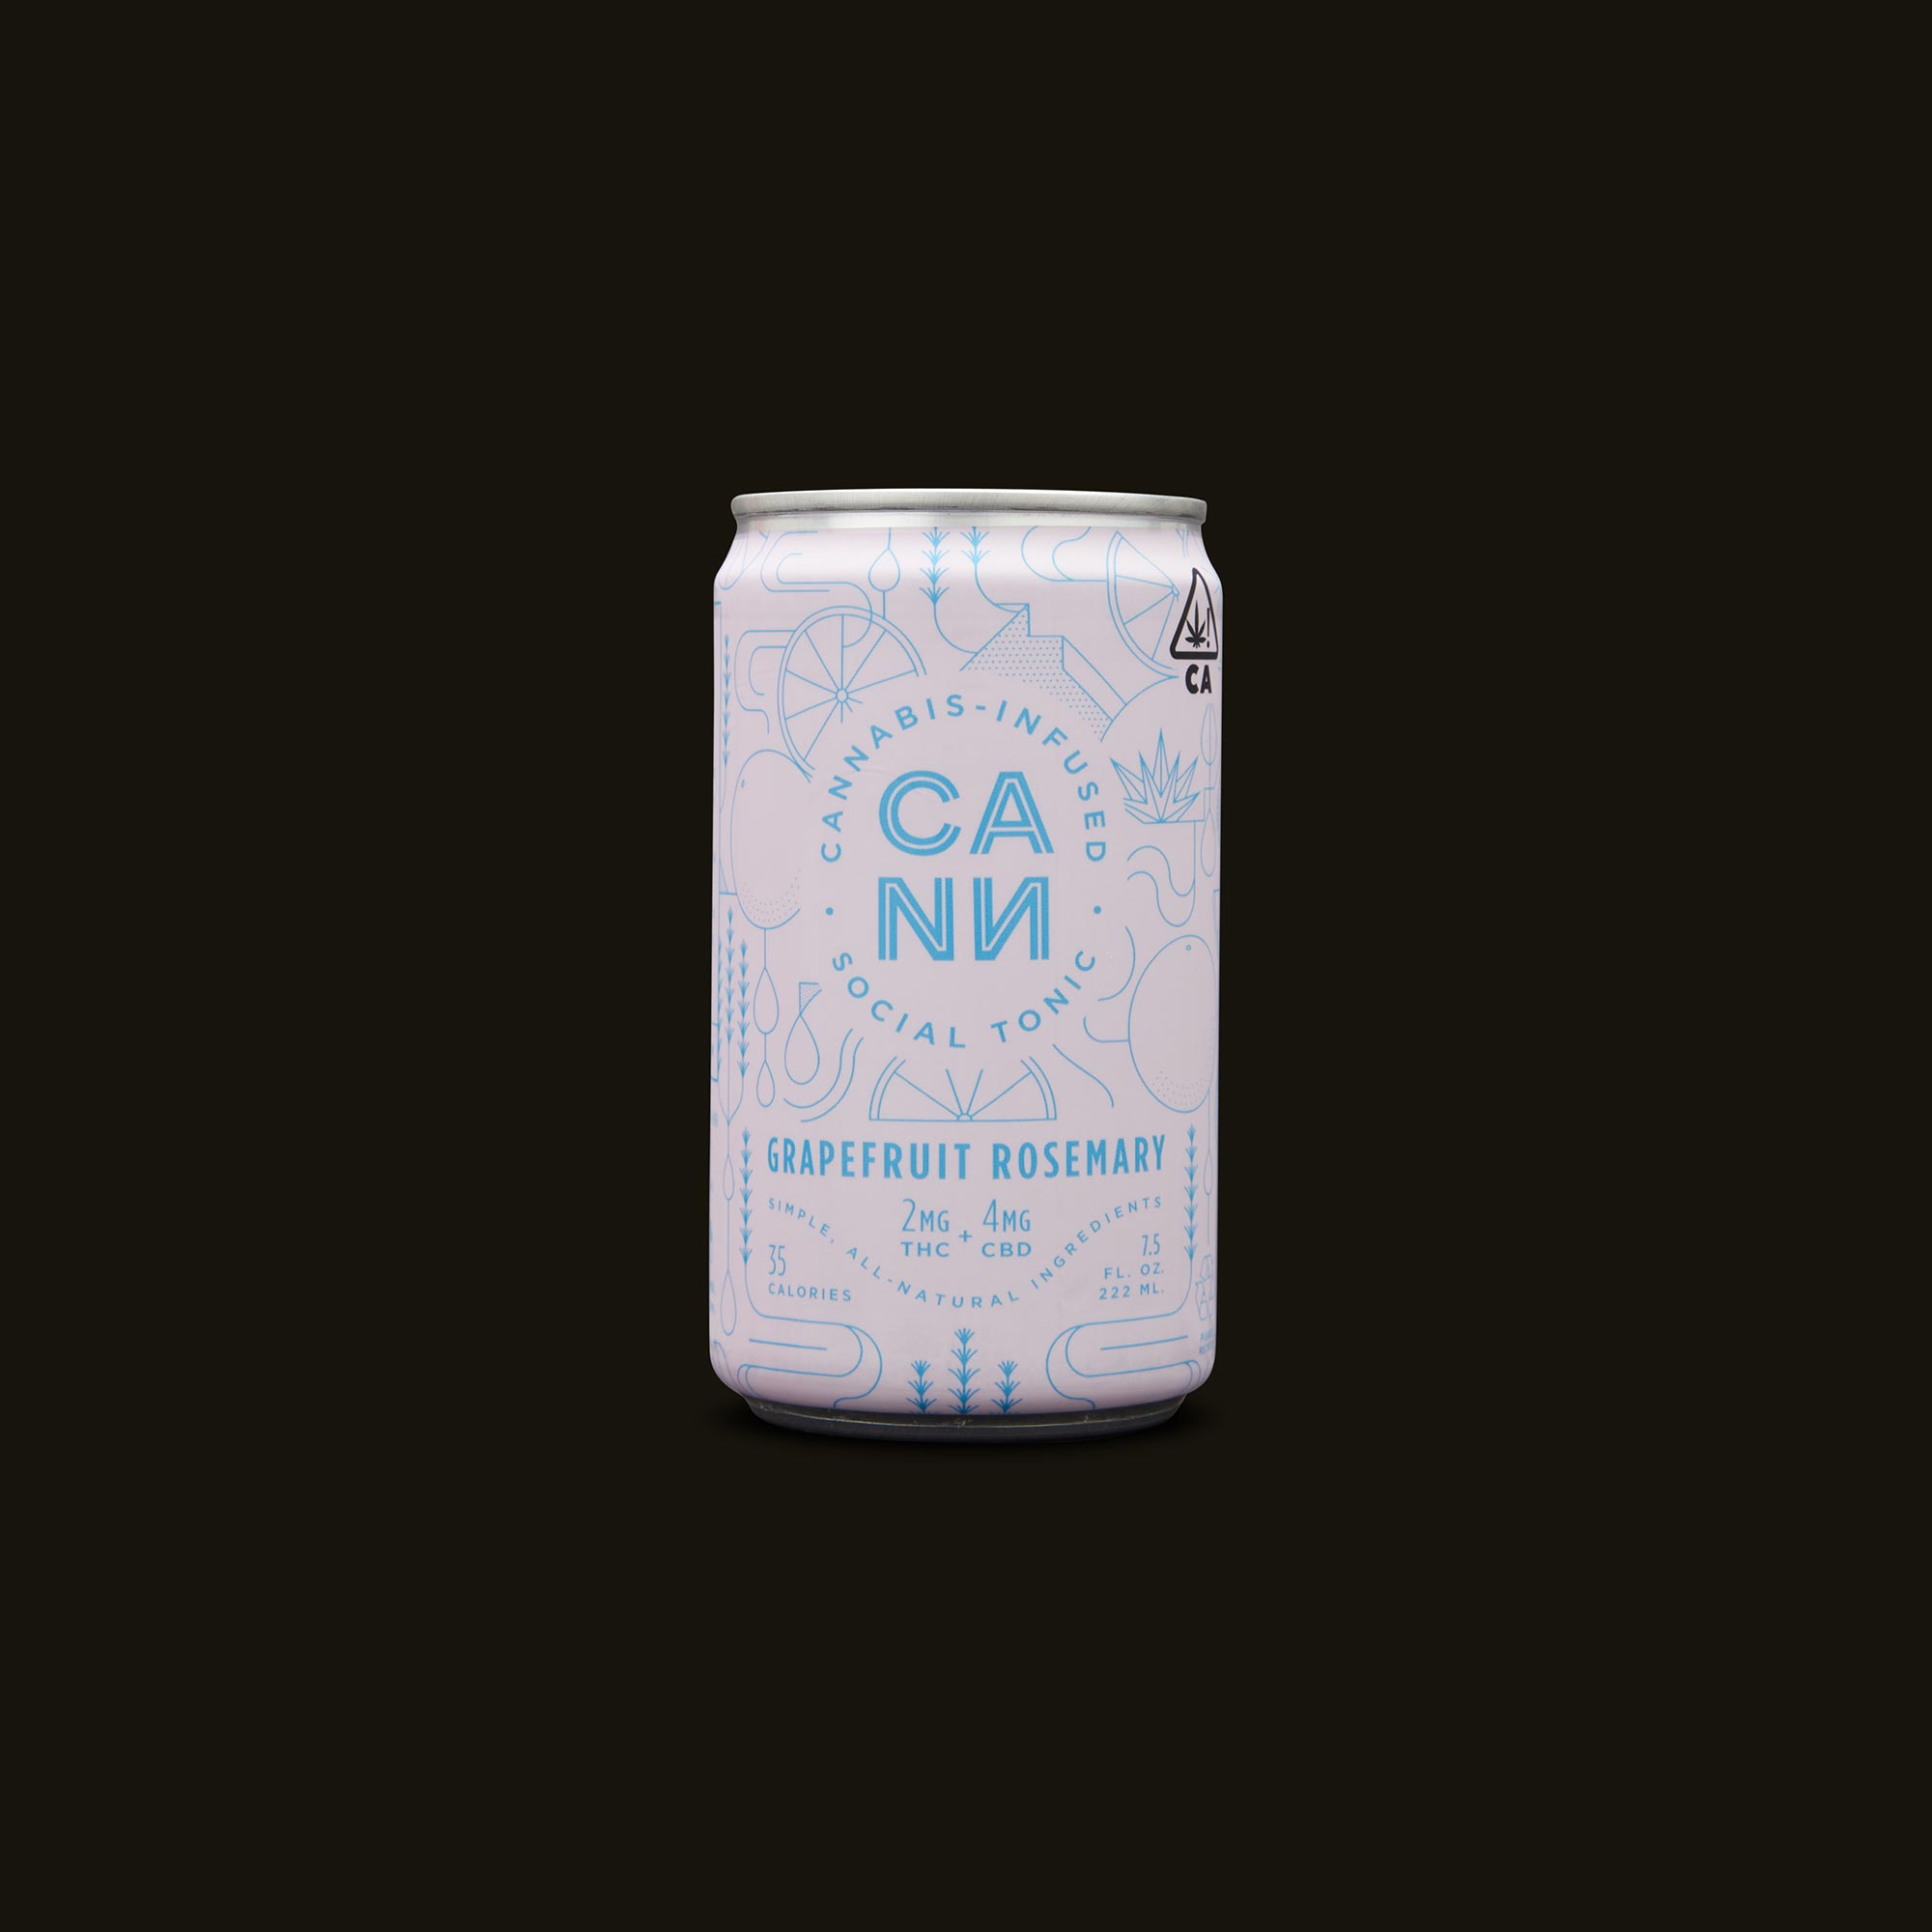 Cann Grapefruit Rosemary Social Tonic Front Can